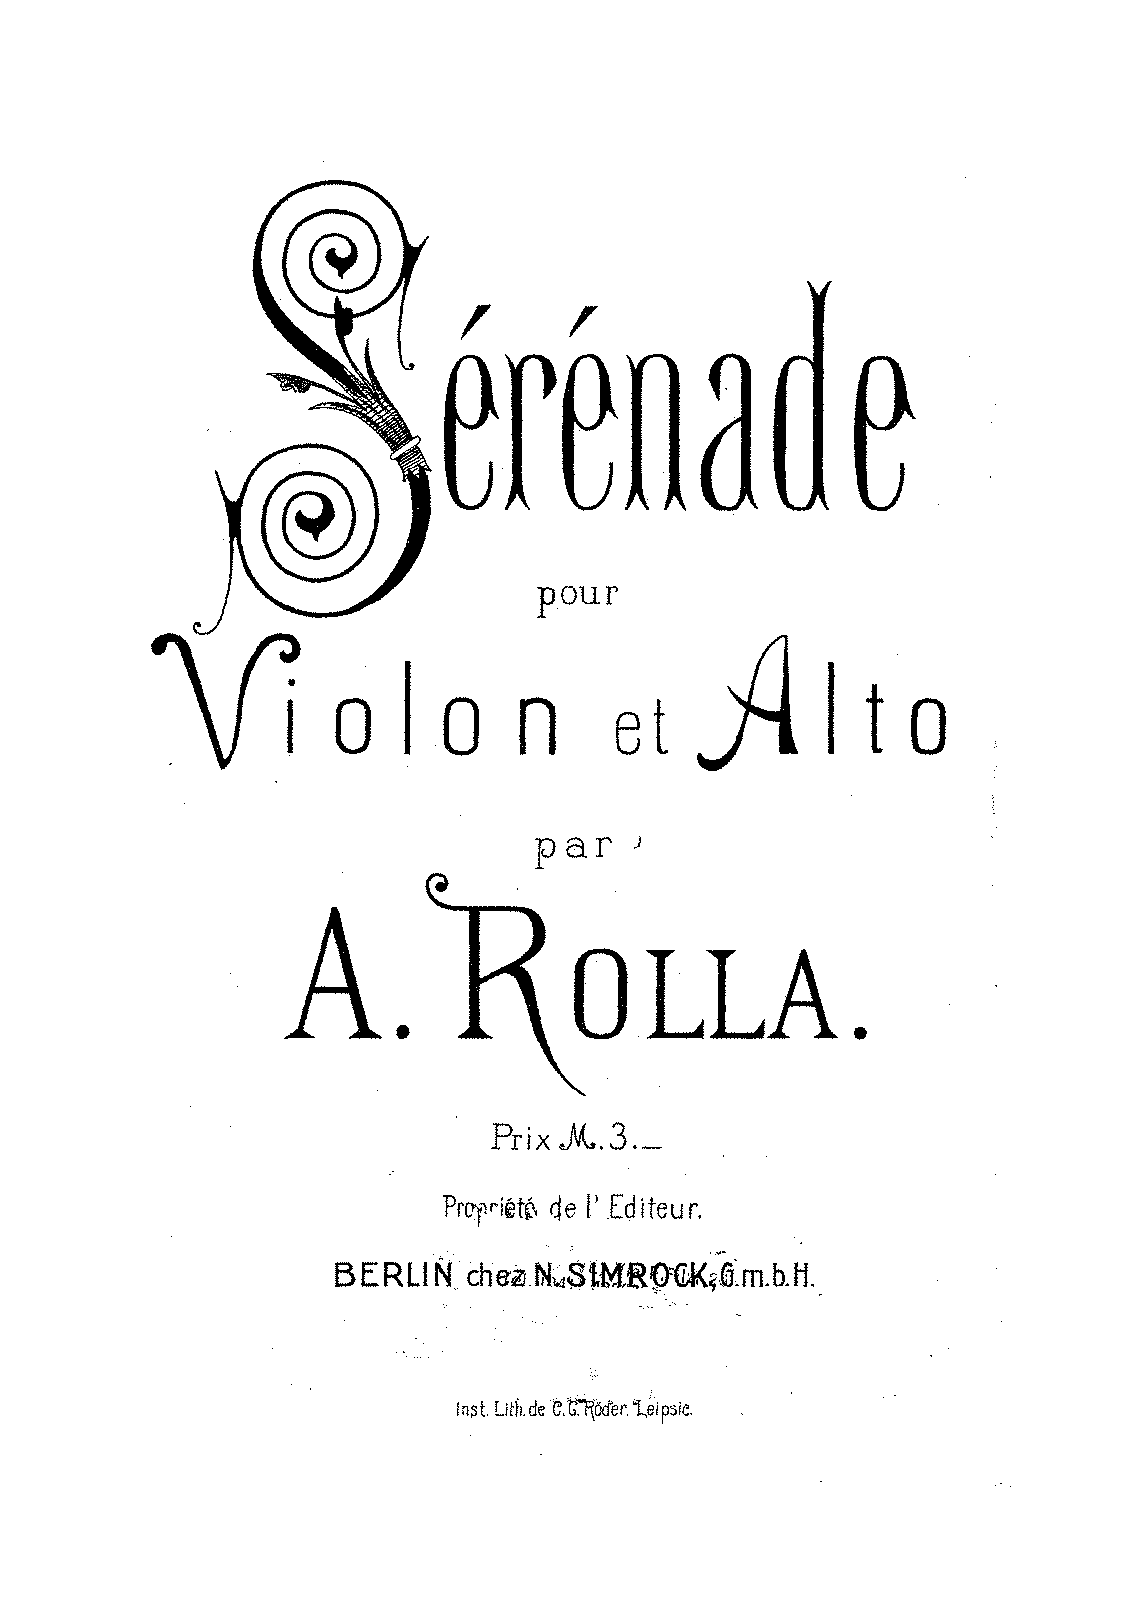 PMLP47889-Rolla Ales. Serenade Op.8 BI 68 for Violin and Viola Parts and Manuscript.pdf